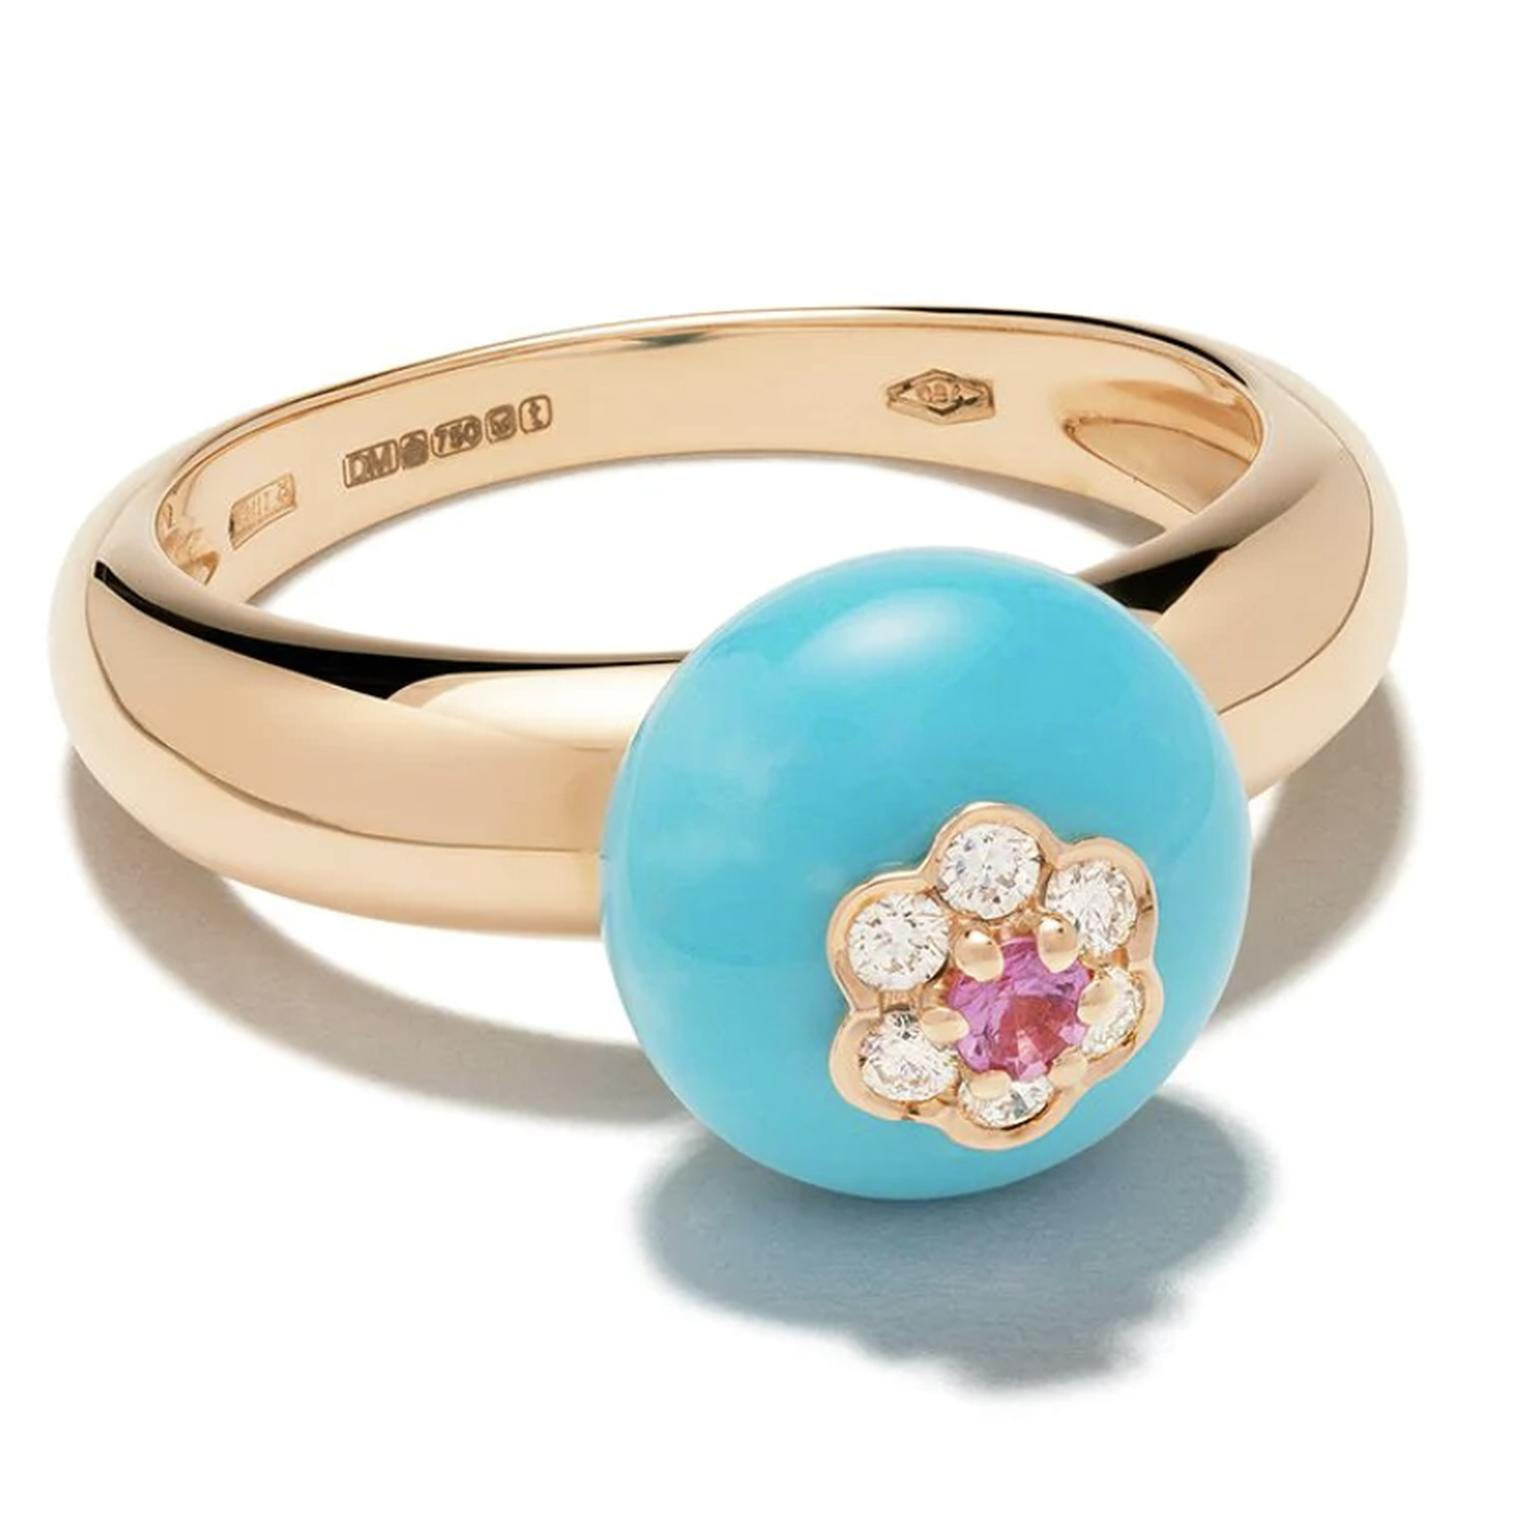 Turquoise ring by David Morris